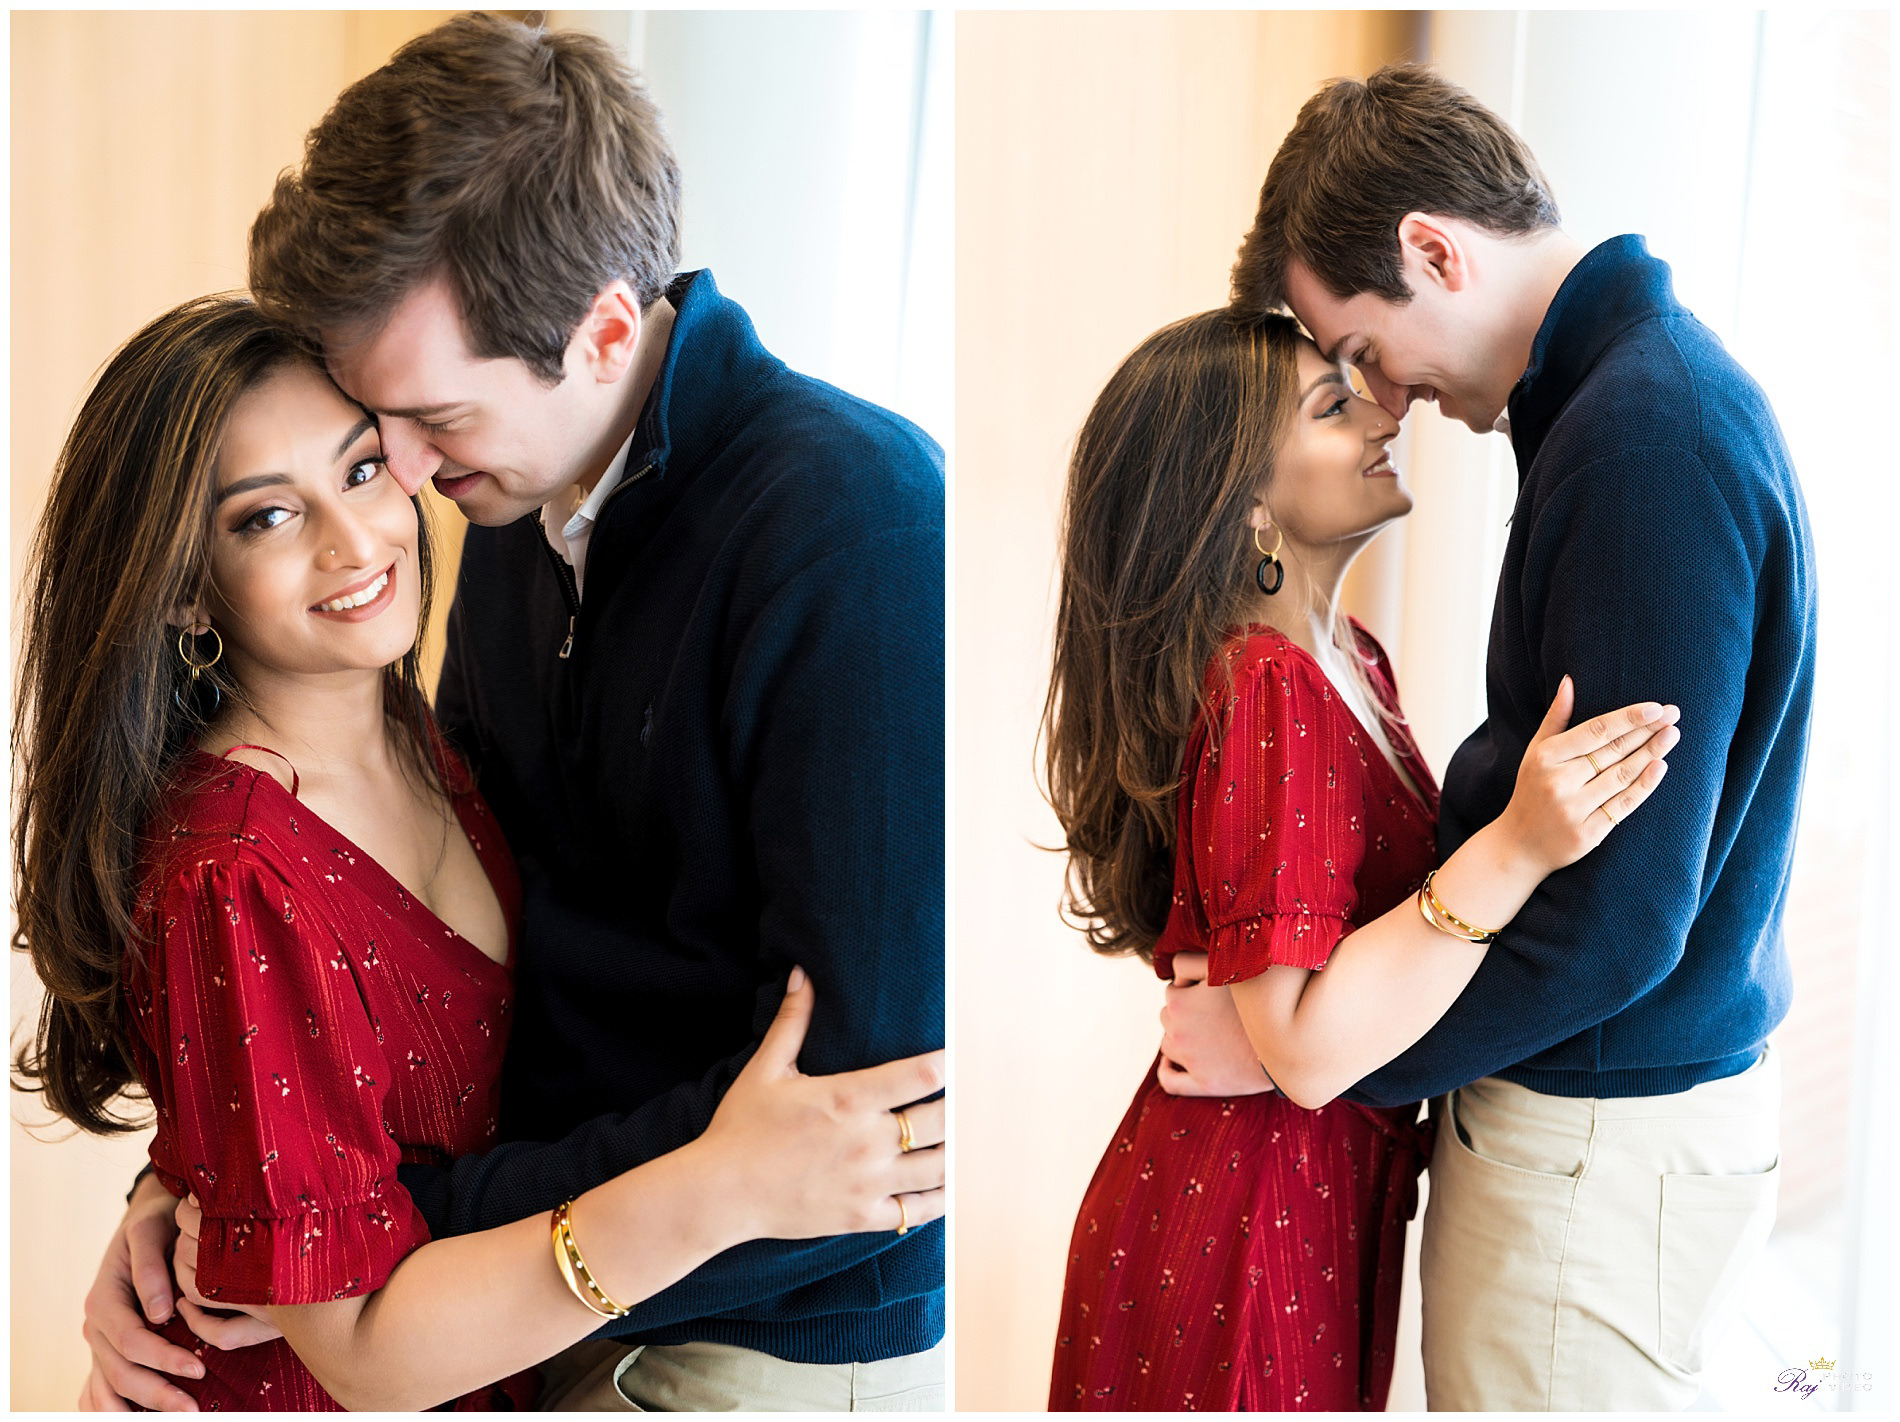 The-College-of-New-Jersey-Engagement-Shoot-Prerna-Kevin4.jpg